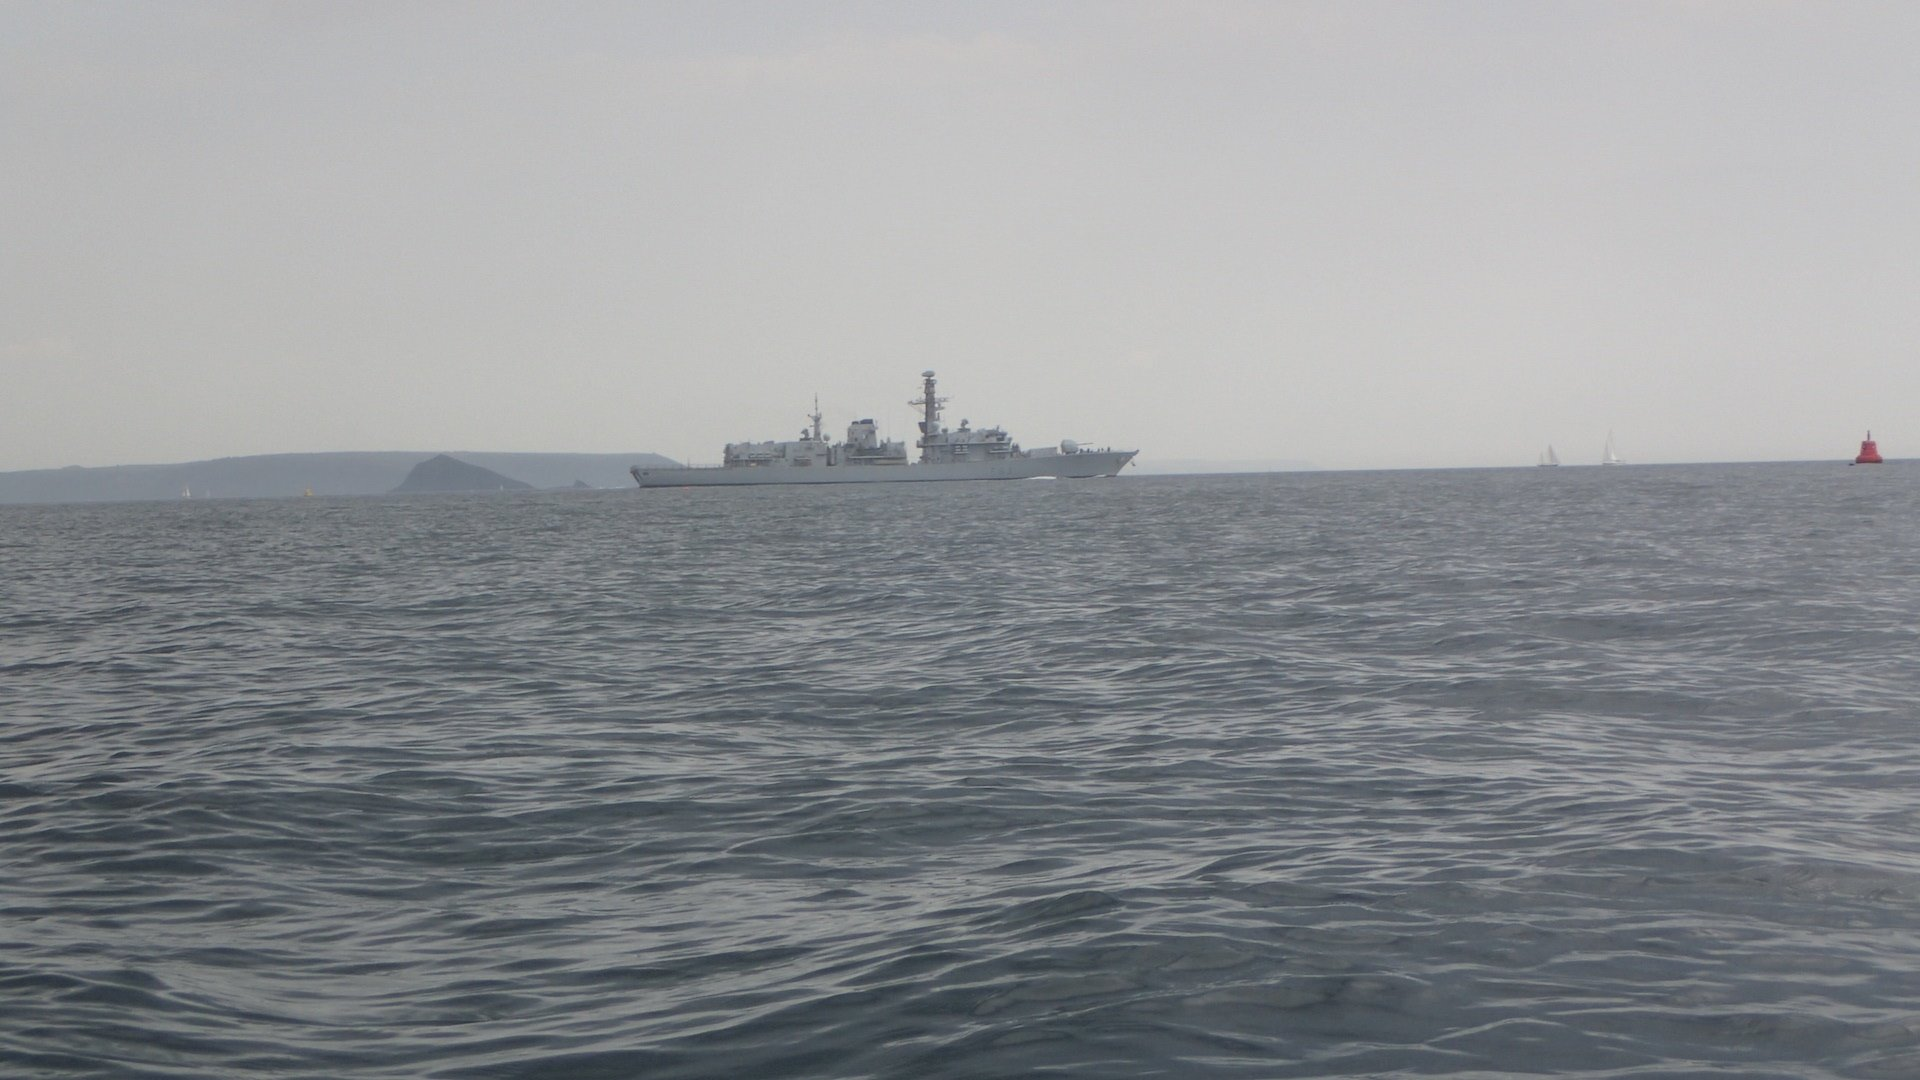 Some other boat in the sound